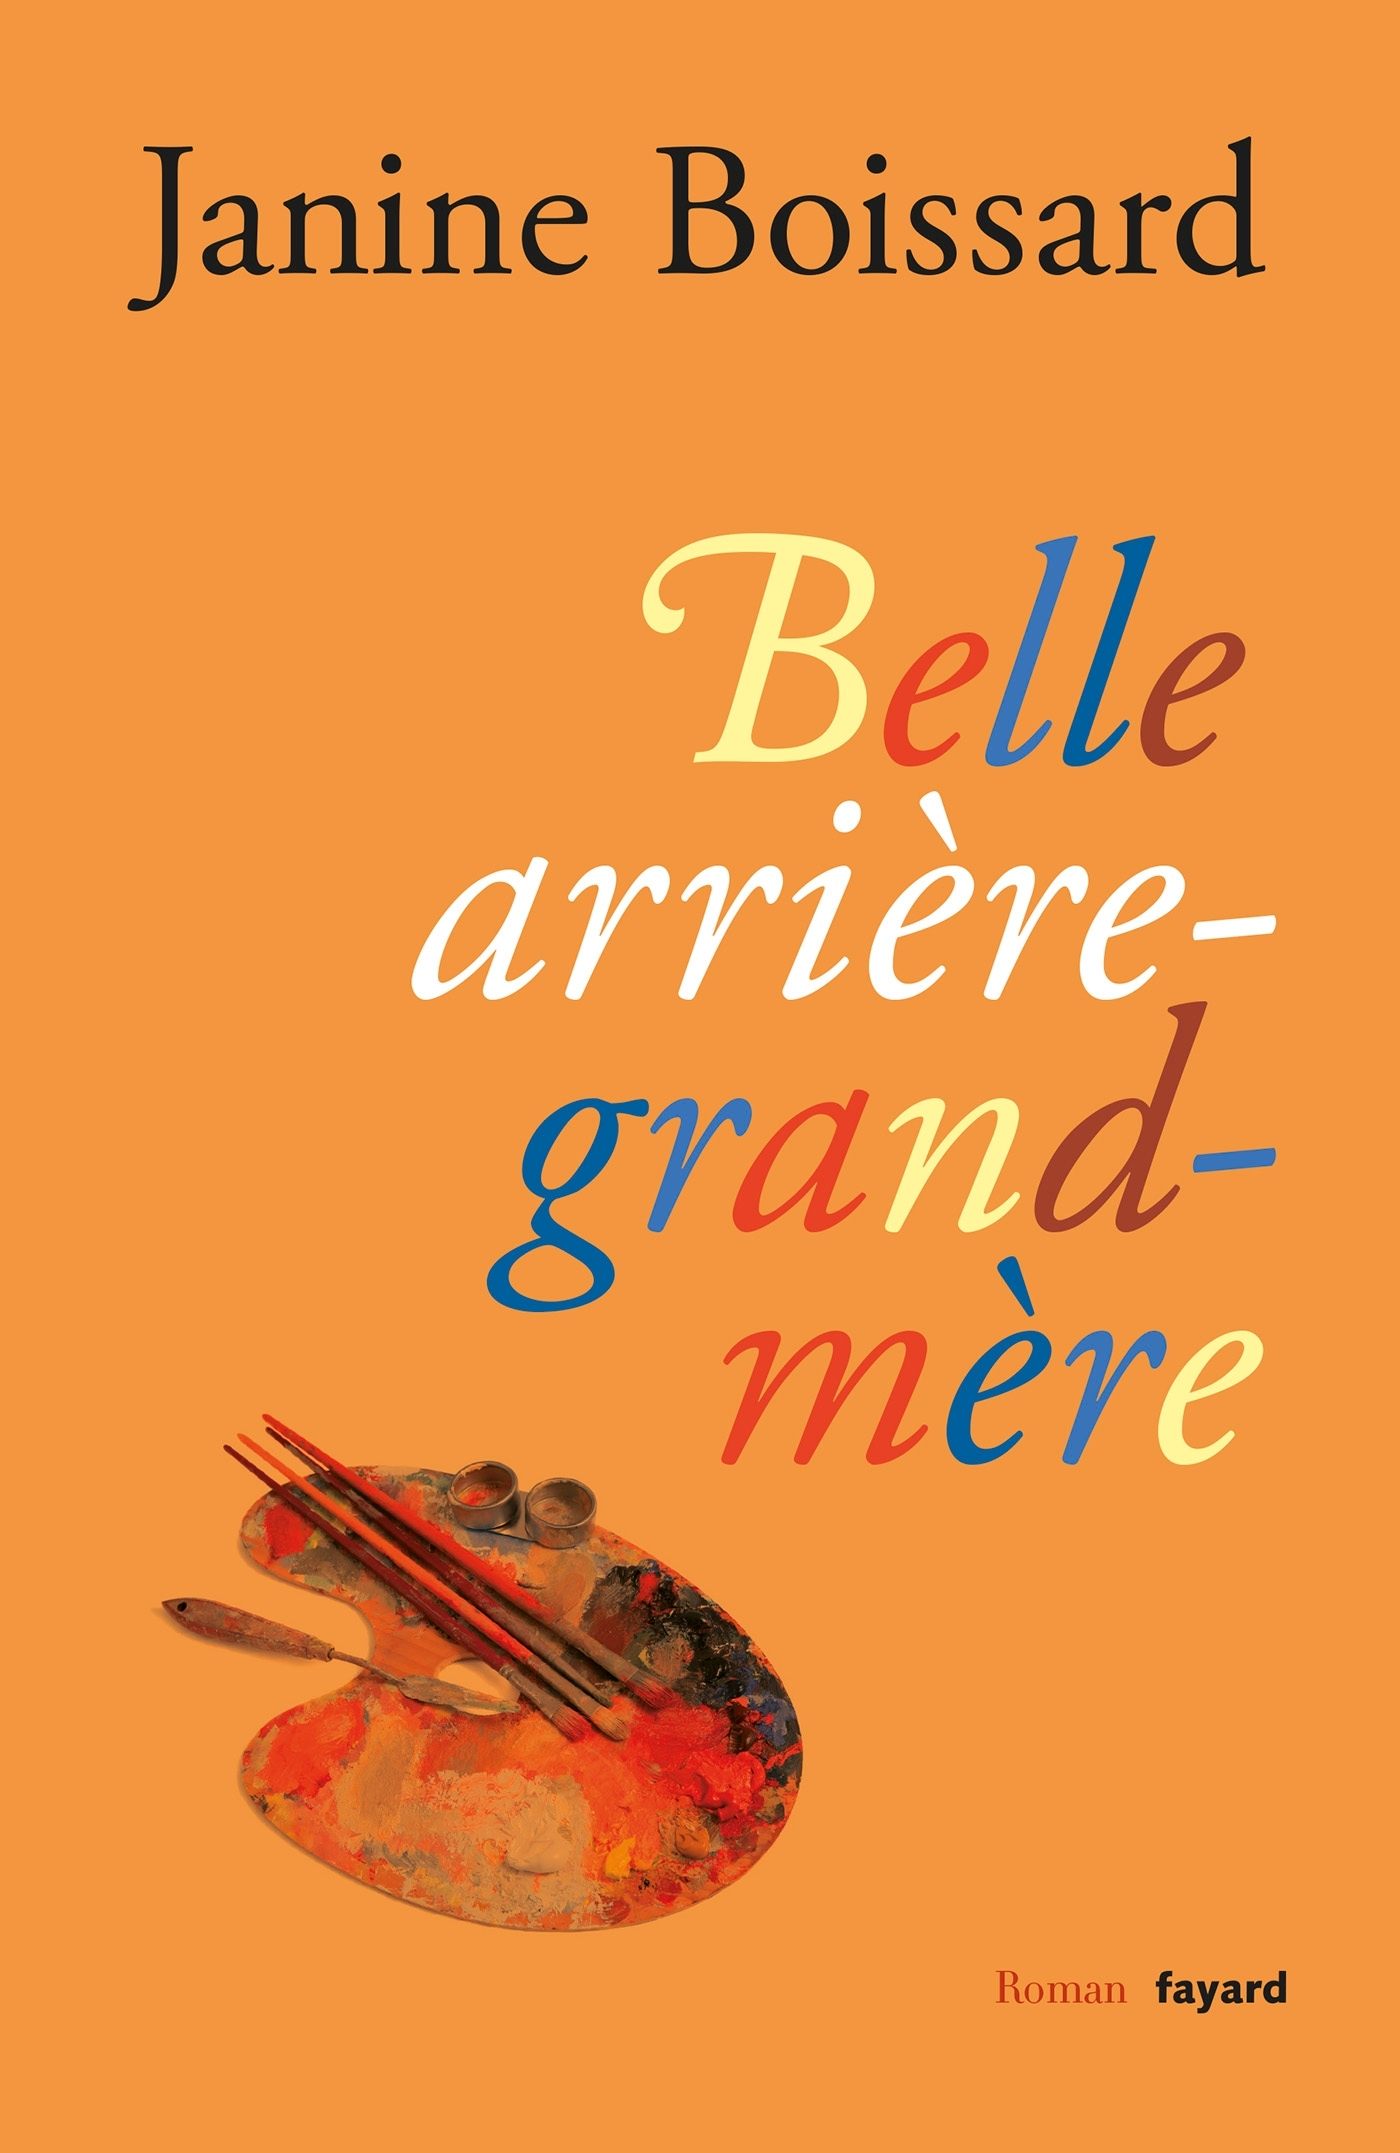 BELLE ARRIERE-GRAND-MERE